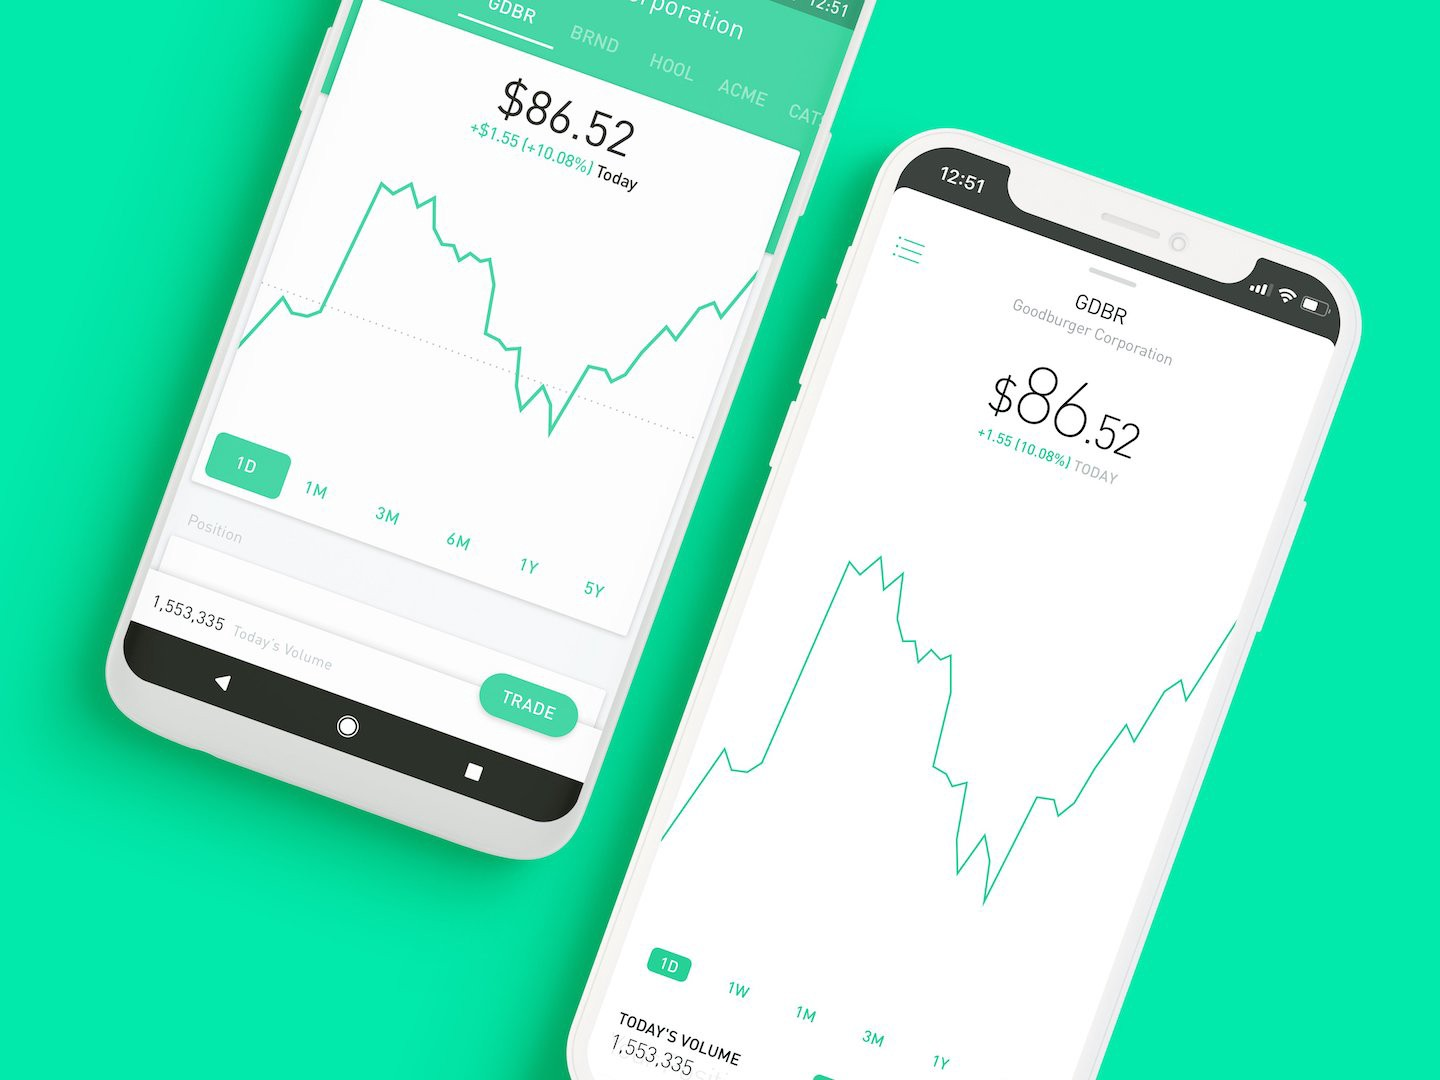 Commission-Free Investing  Robinhood Size Reddit